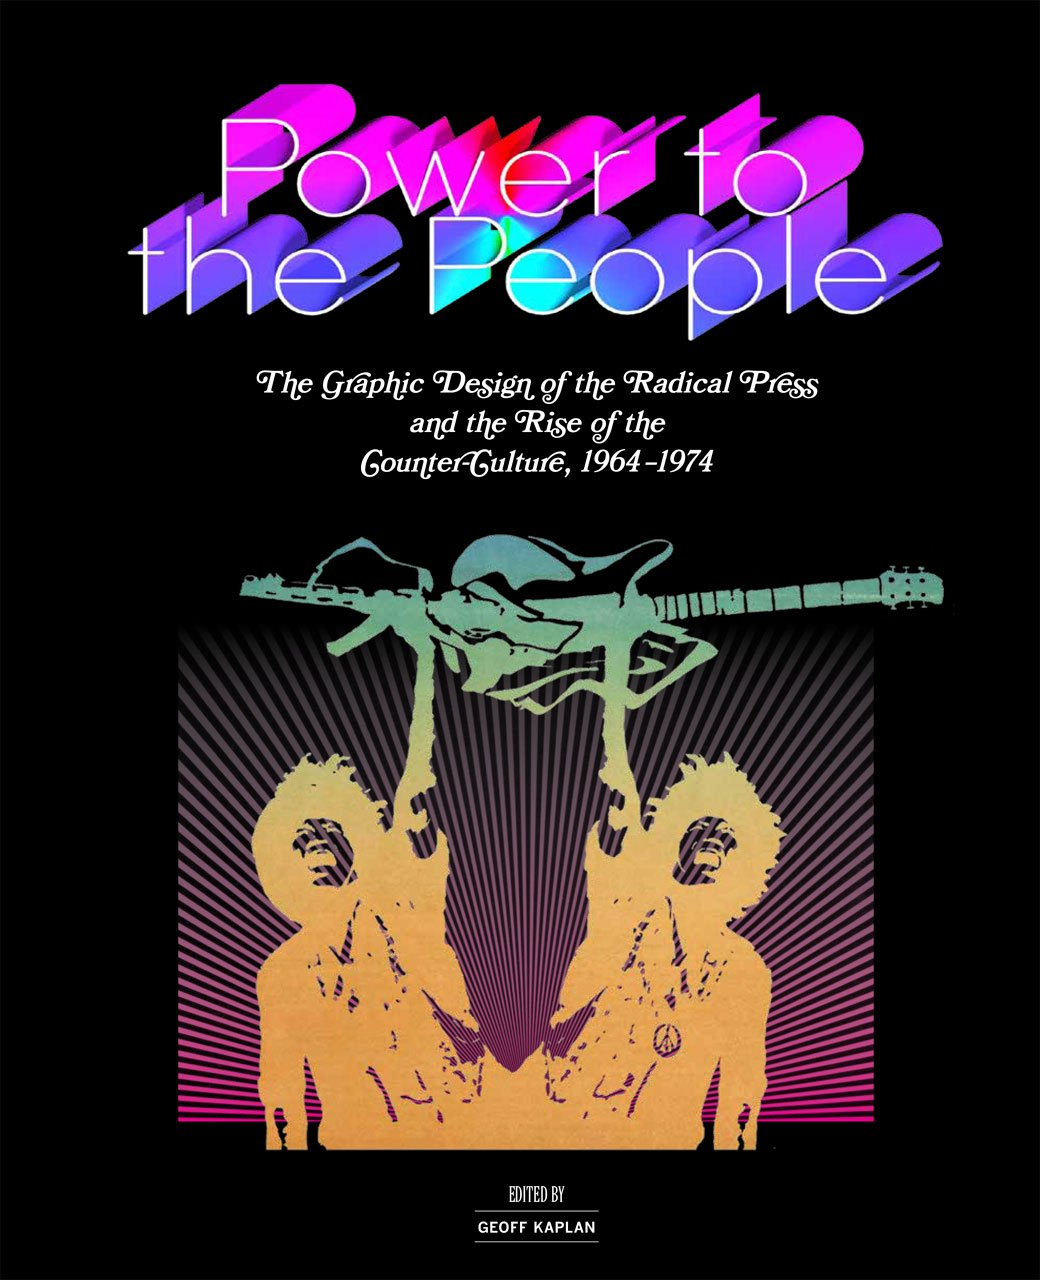 Power to the People: The Graphic Design of the Radical Press and the Rise of the Counter-Culture, 1964-1974 by Brand: University Of Chicago Press